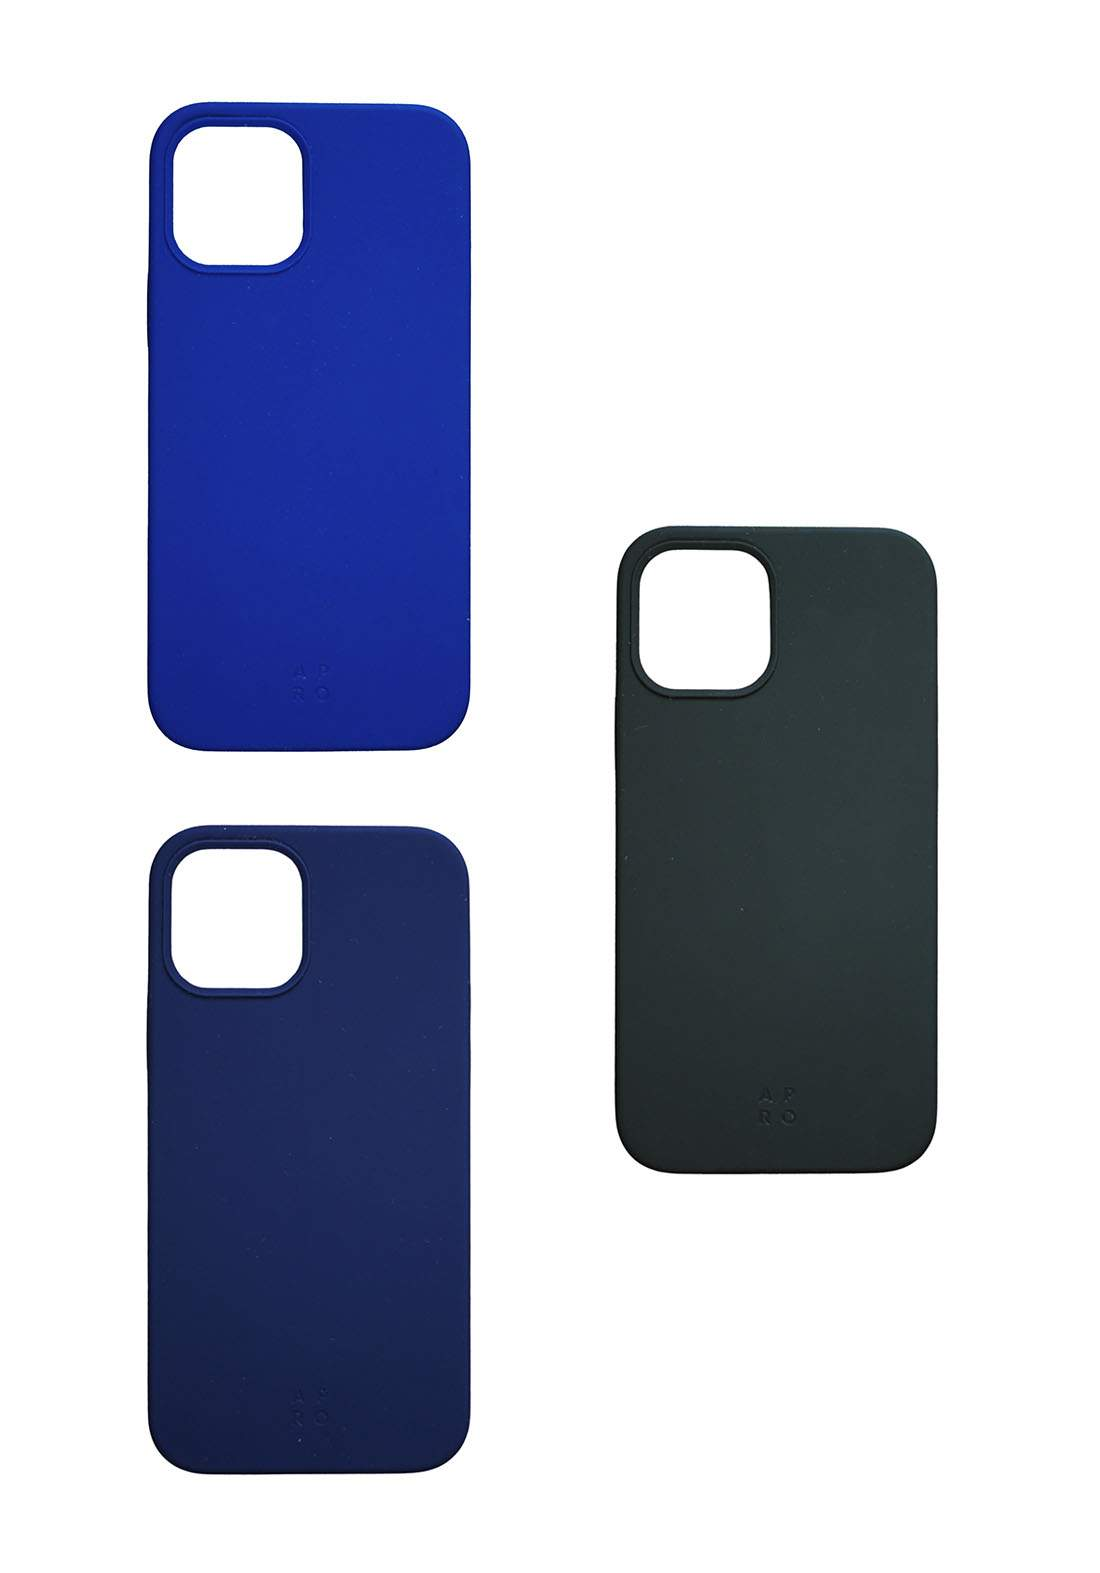 Apro Protective Cover For Iphone 12 Pro حافظة موبايل